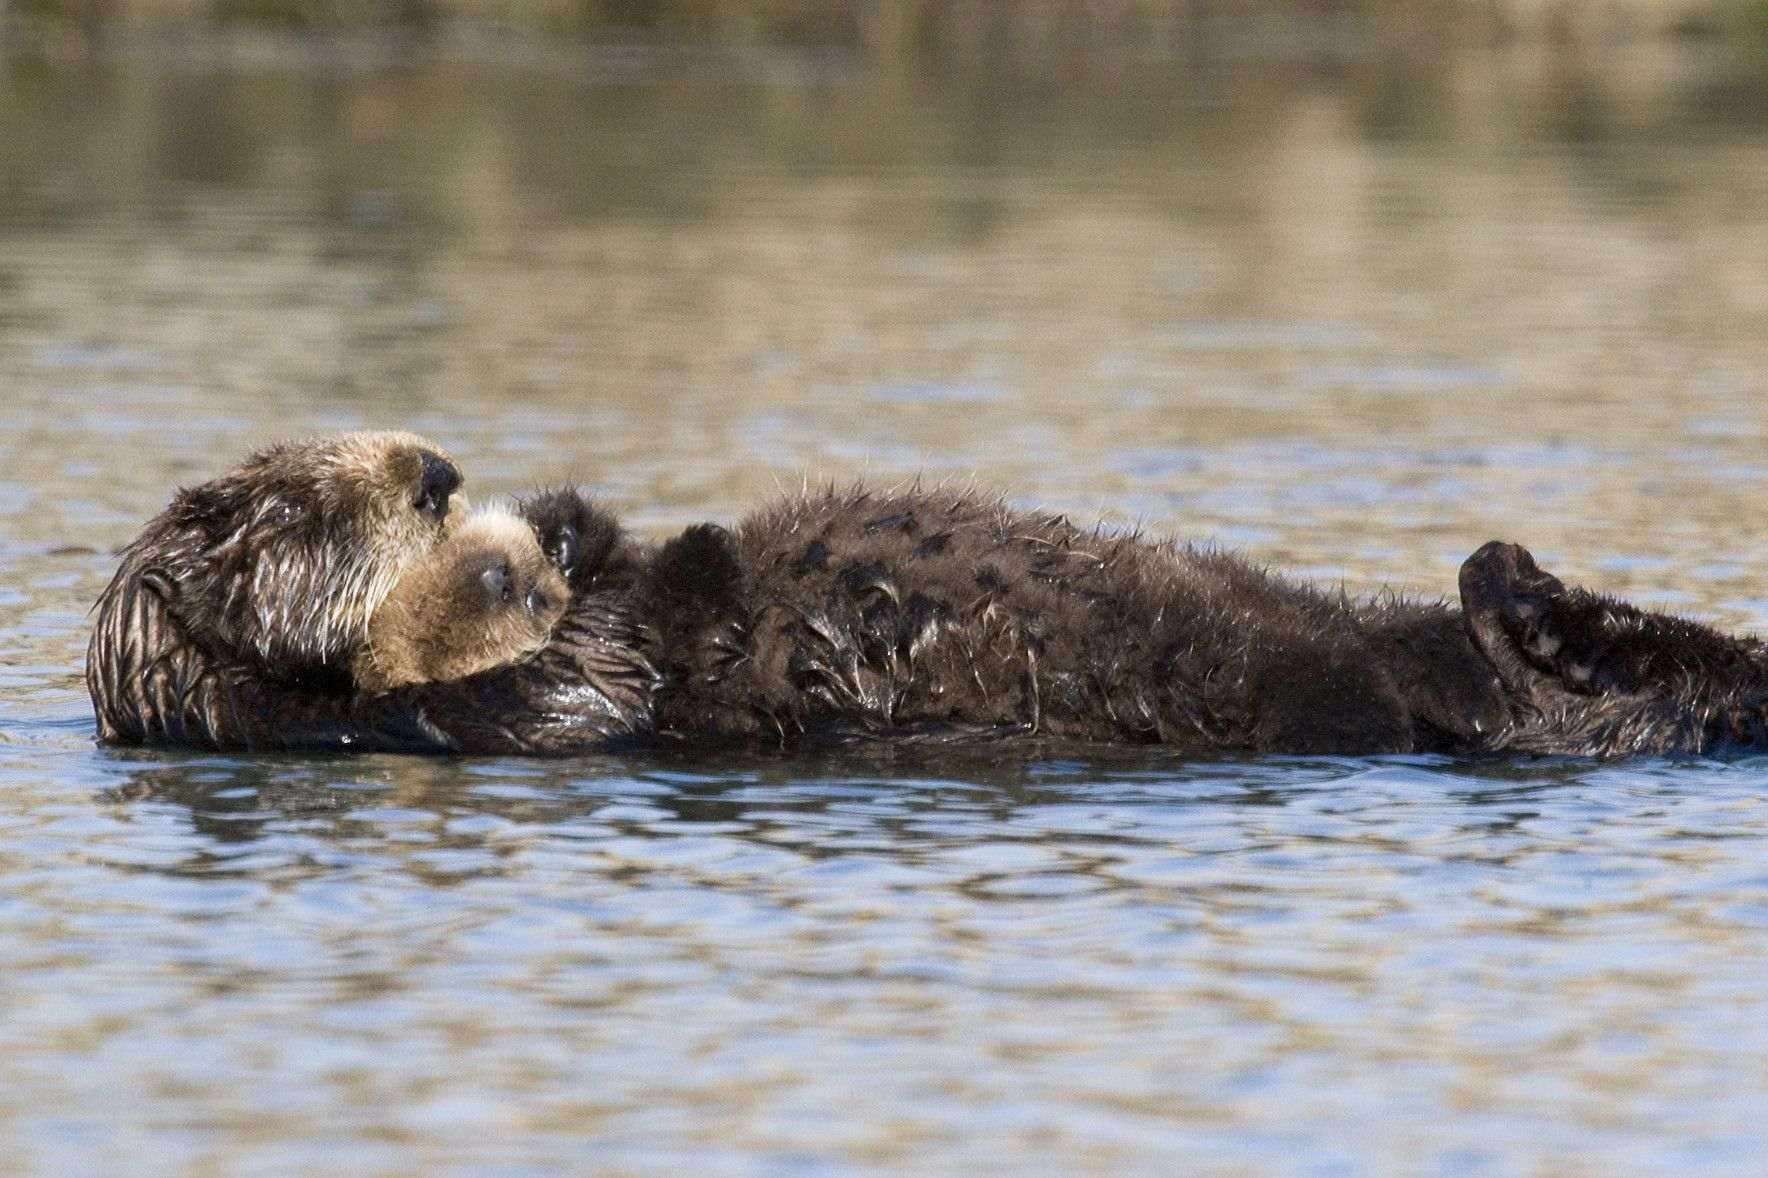 Sea Otter Wallpapers 1768x1178